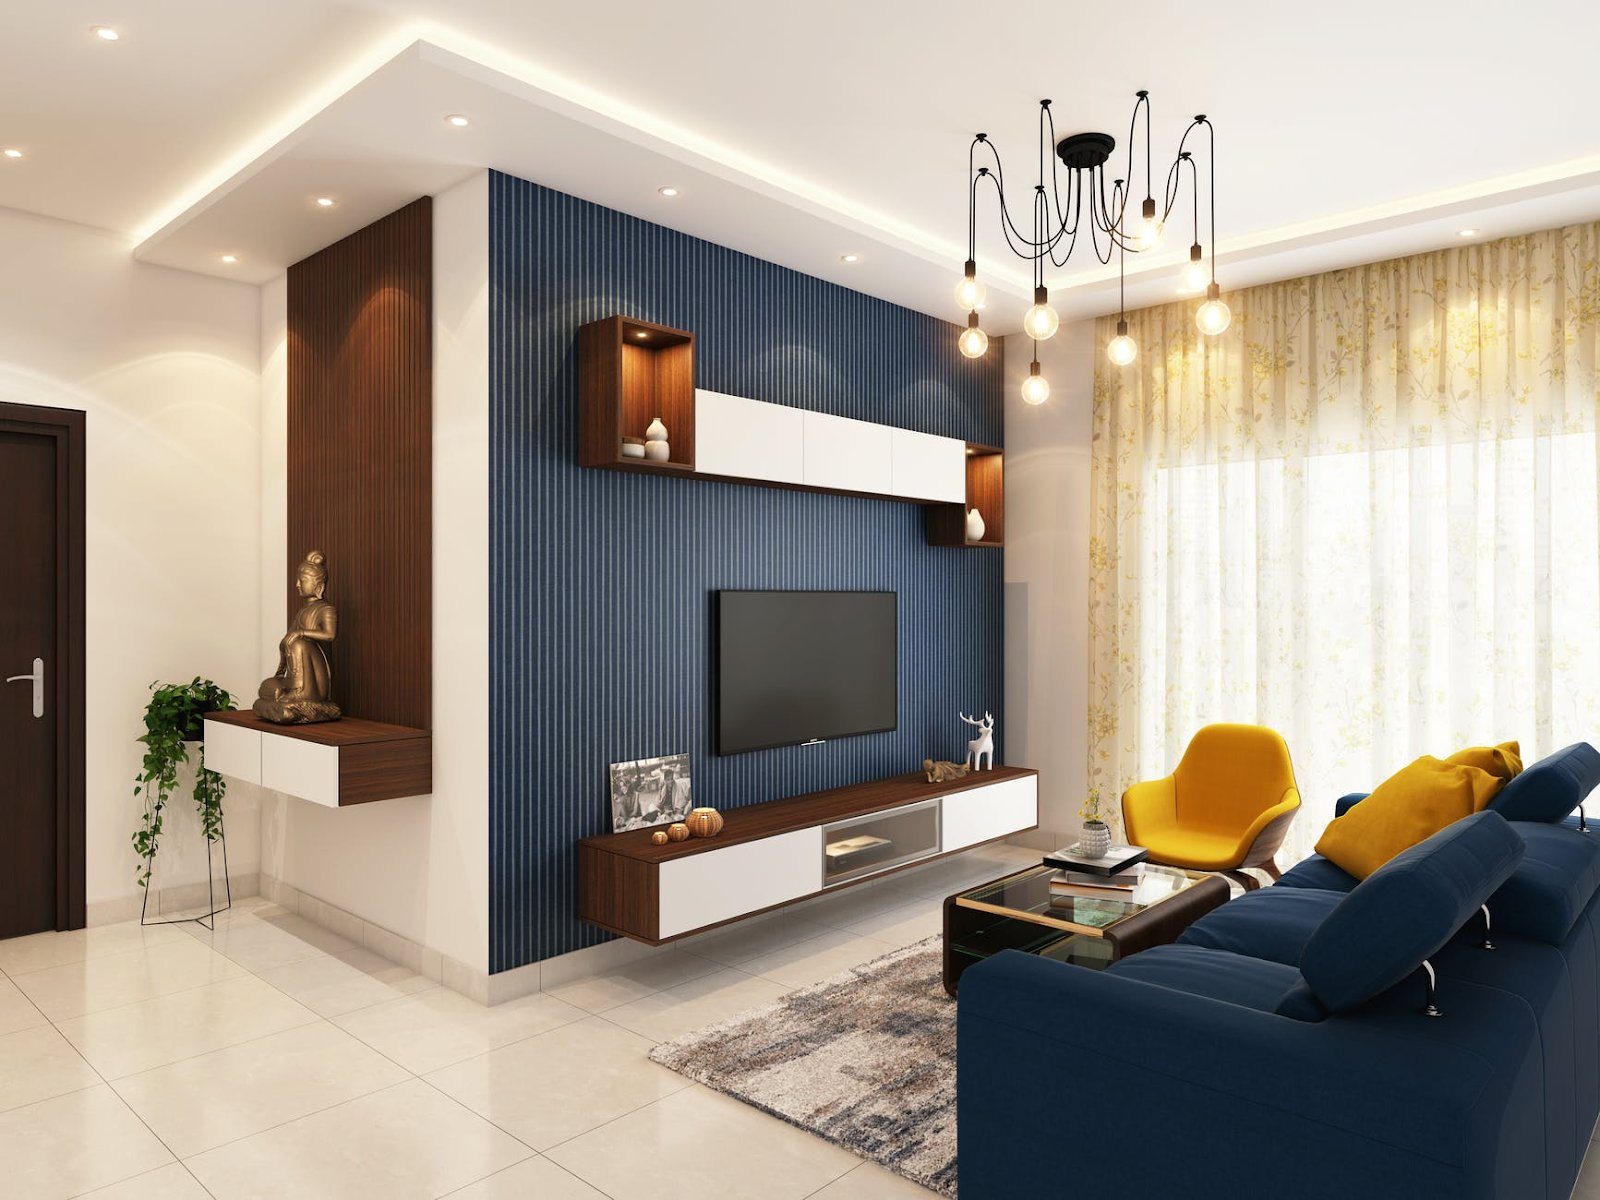 the entertainment center in a short-term rental property